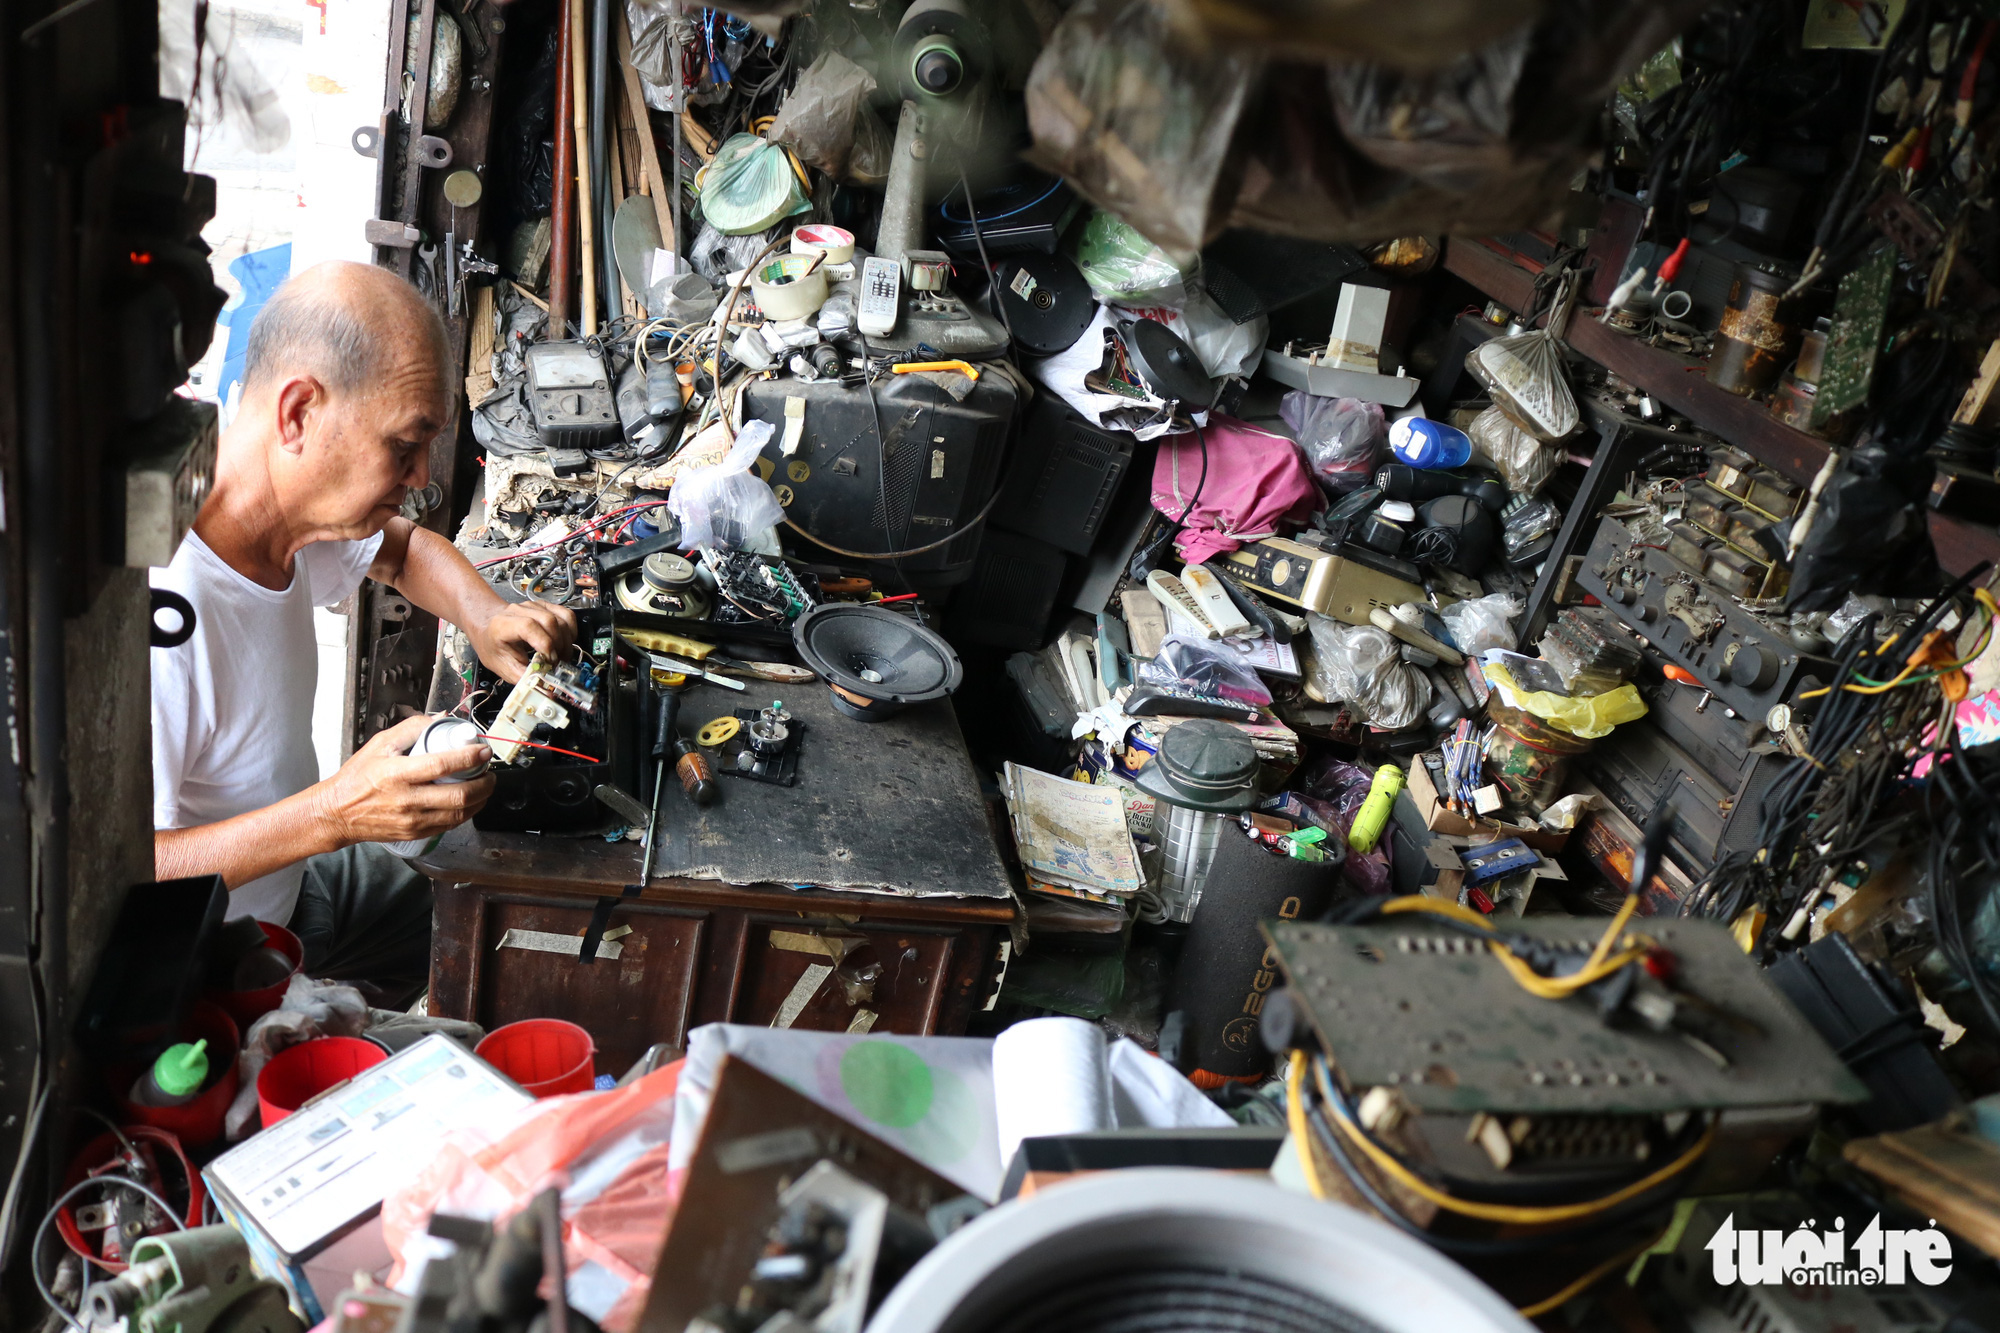 Tran Minh Tri repairs radio devices in the two-square-meter kiosk on Vo Van Ngan Street in Thu Duc District, Ho Chi Minh City. Photo: Hoang An / Tuoi Tre